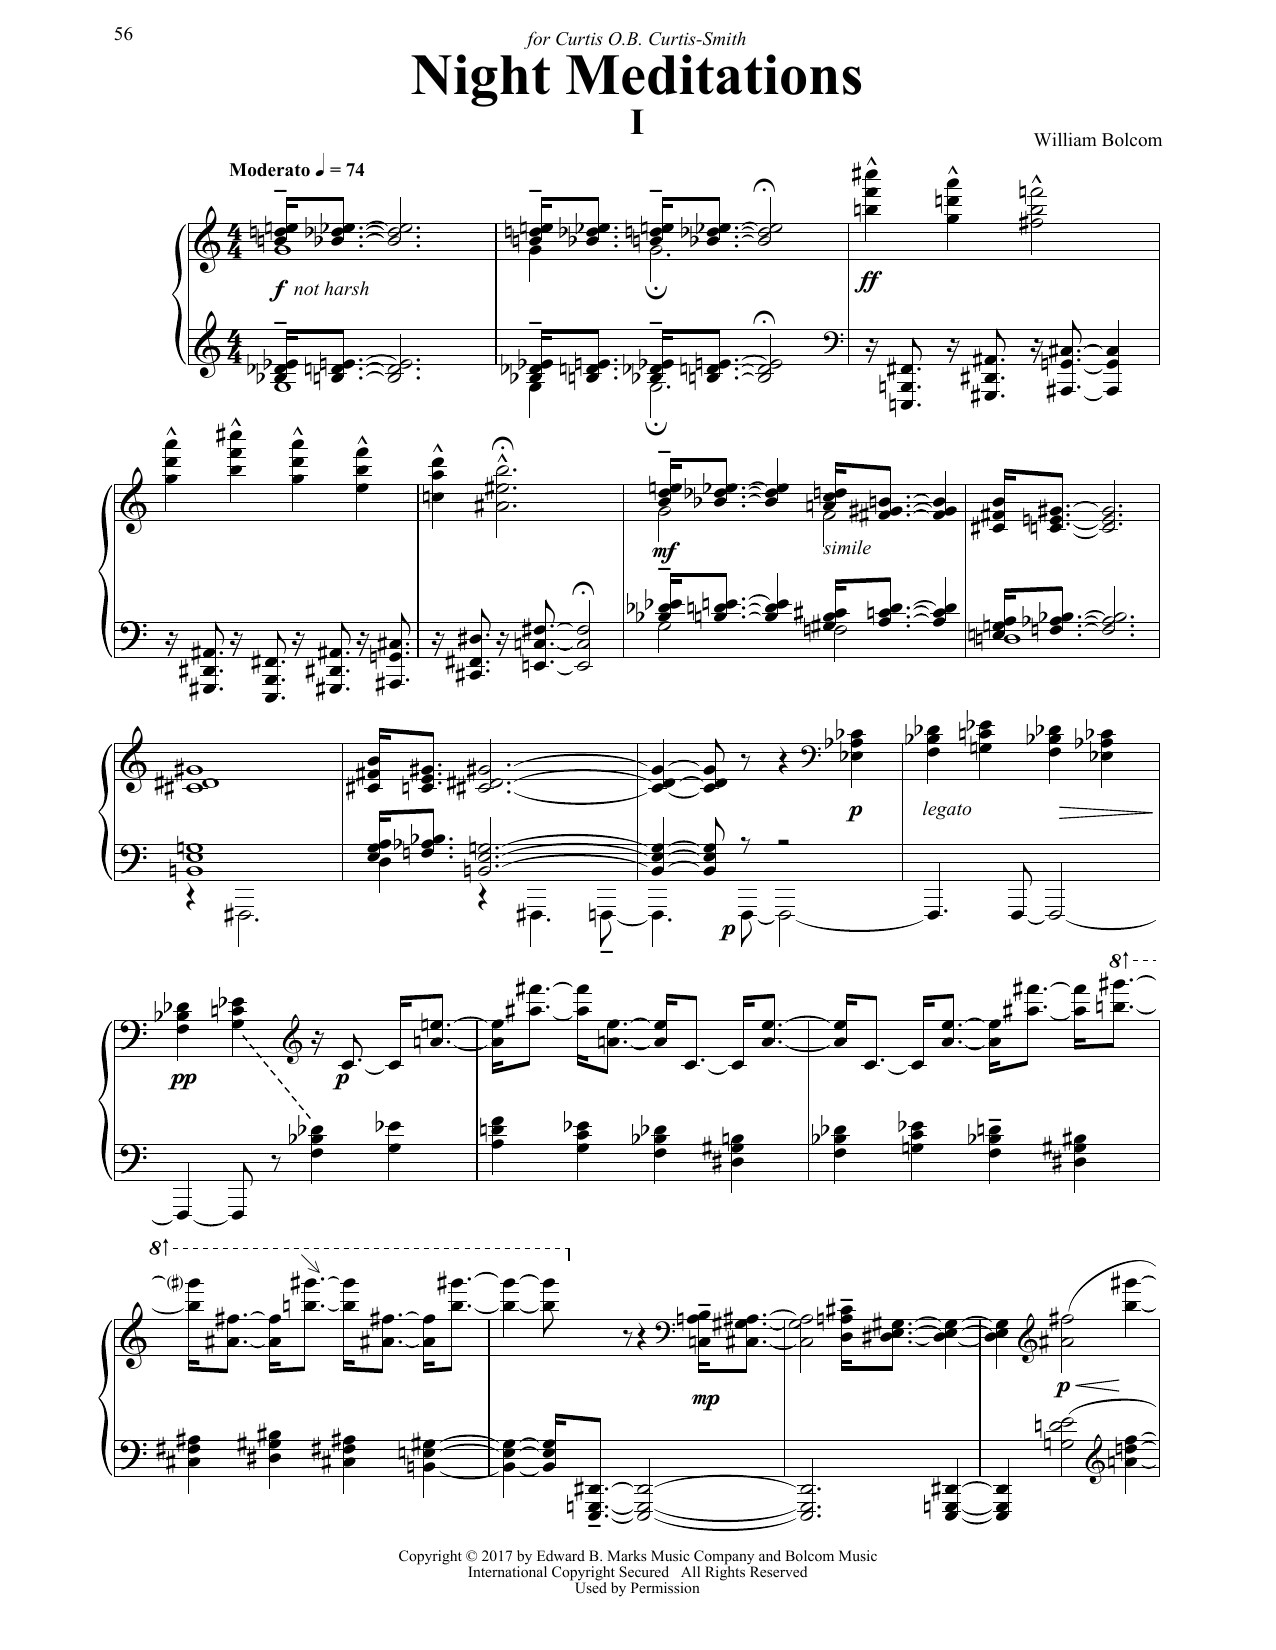 William Bolcom Night Meditations sheet music notes and chords. Download Printable PDF.